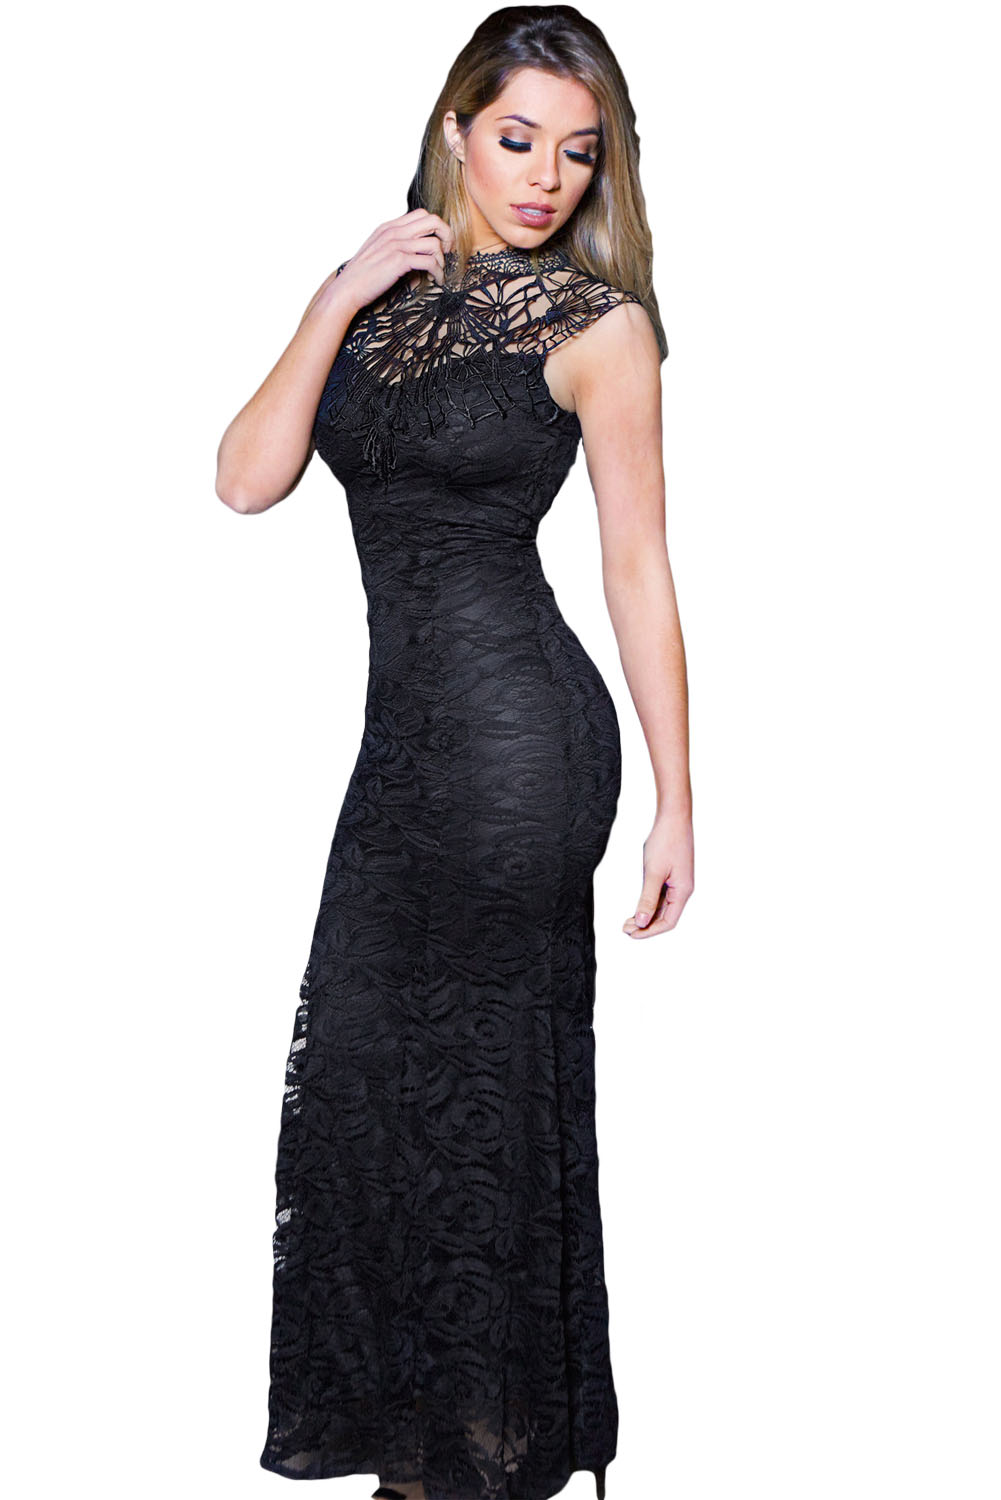 Lulus Exclusive! Open your eyes to a world of beautiful possibilities in the Lulus Awaken My Love Black Long Sleeve Lace Maxi Dress! Crocheted lace elegantly graces the fitted bodice of this stunning dress, with a V-neckline and sheer long sleeves/5().